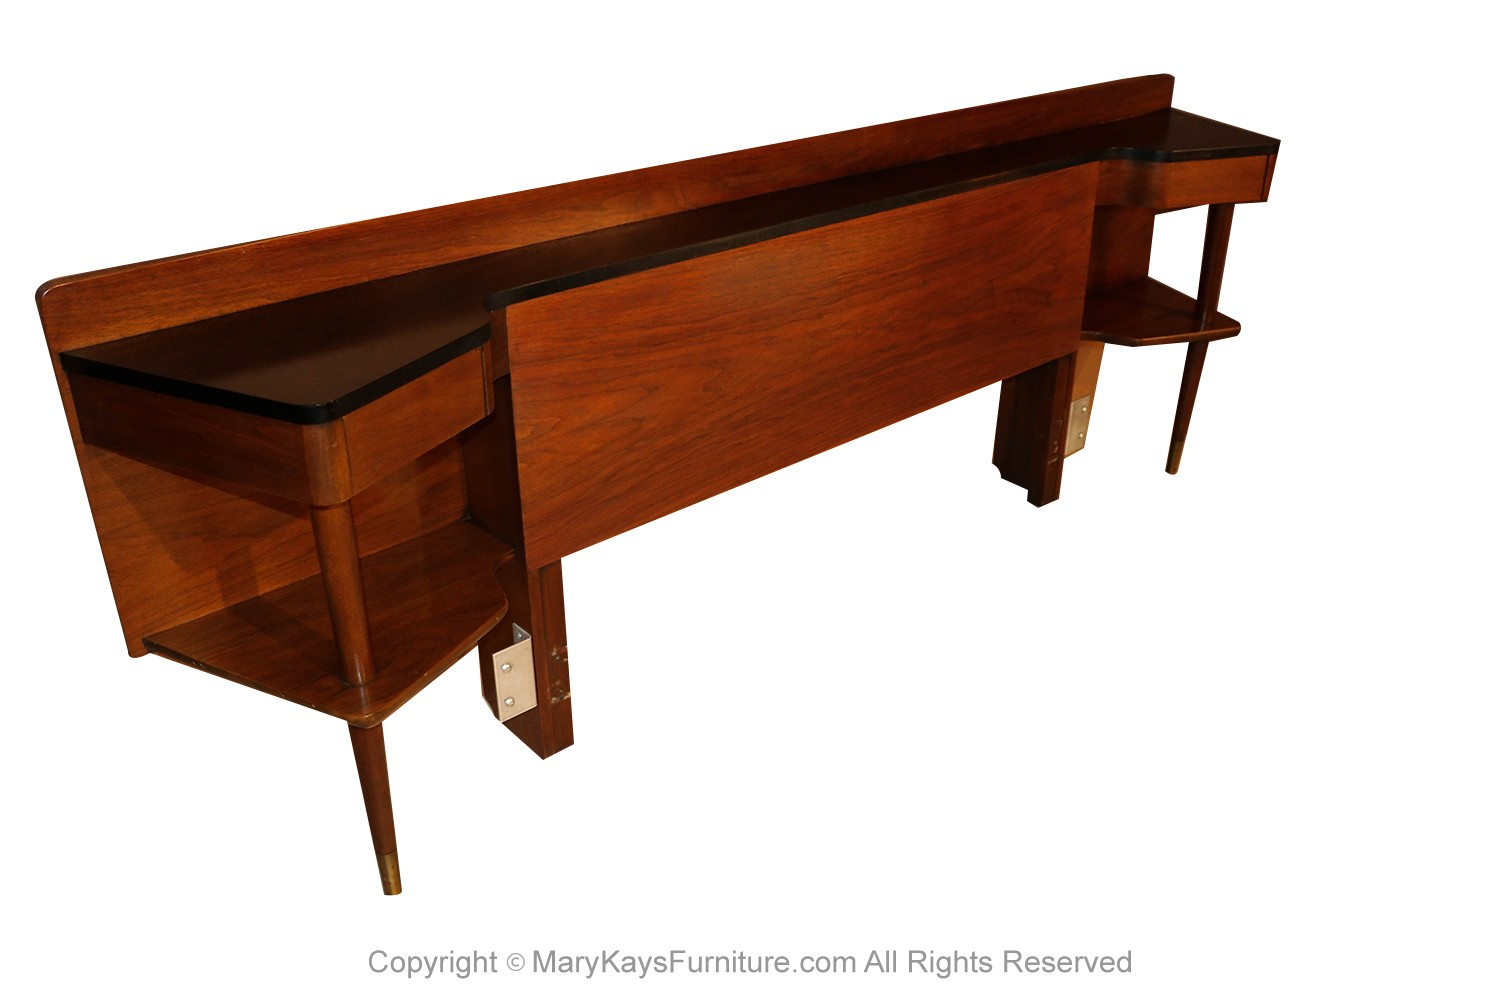 Image of: American Of Martinsville Mid Century Modern Queen Headboard